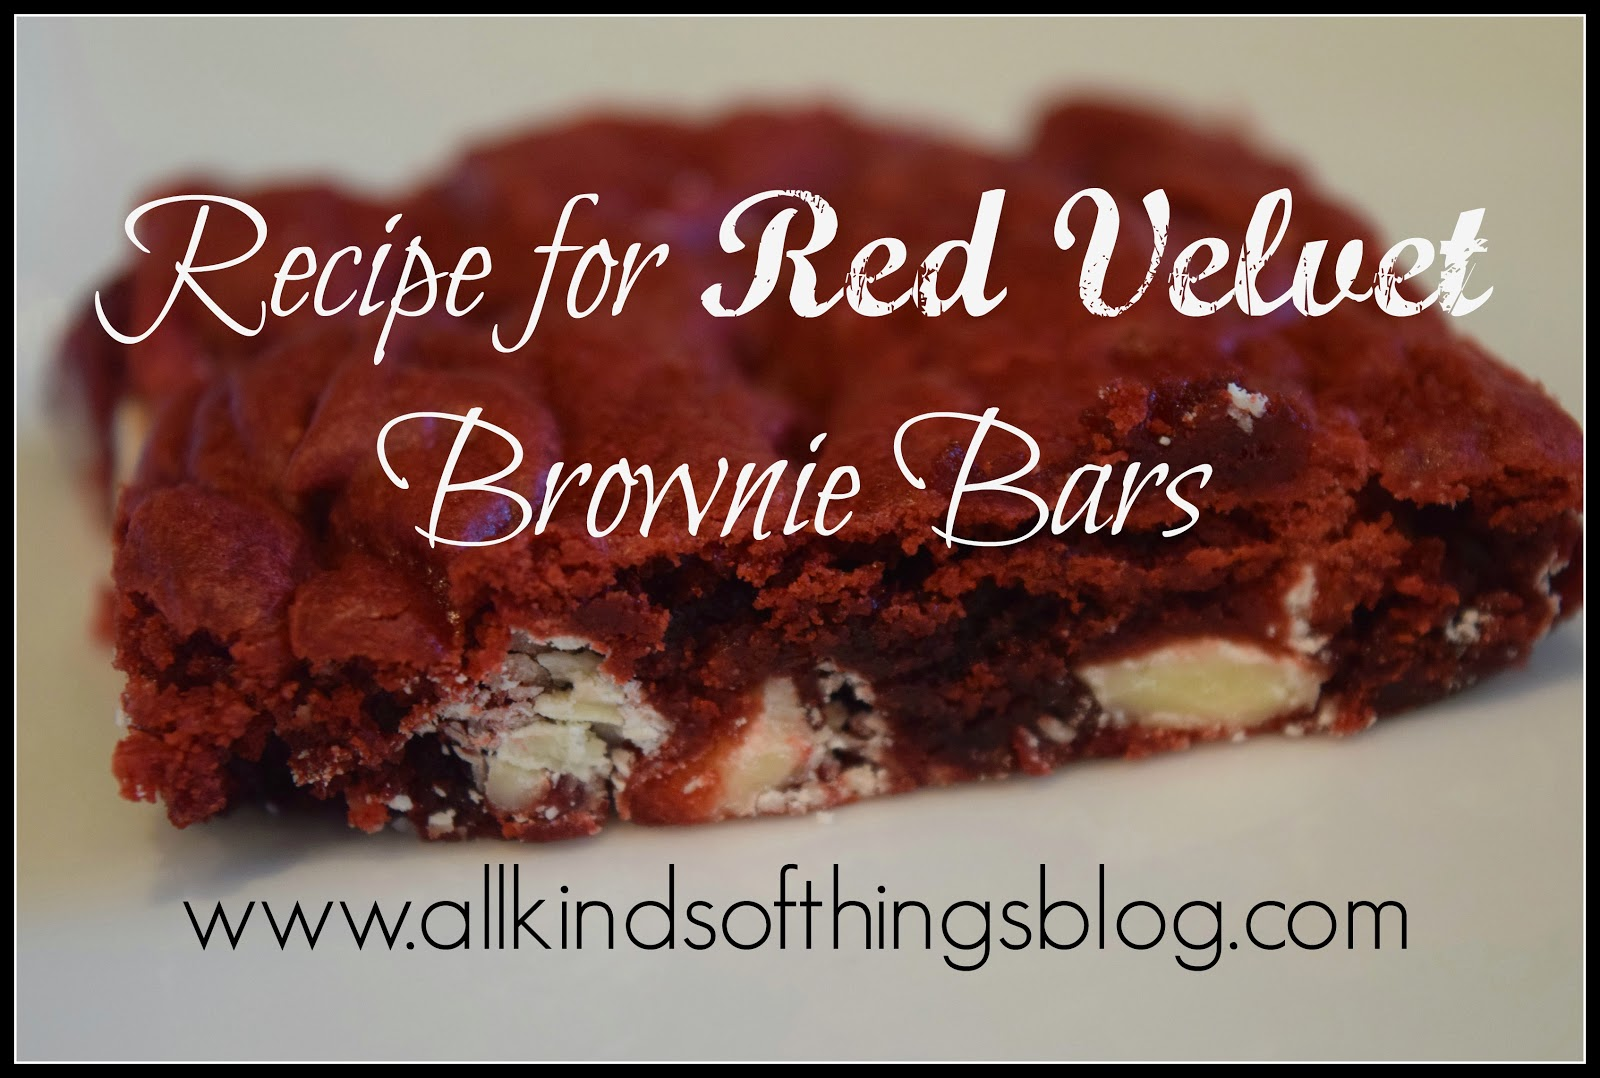 Recipe for Red Velvet Brownie Bars